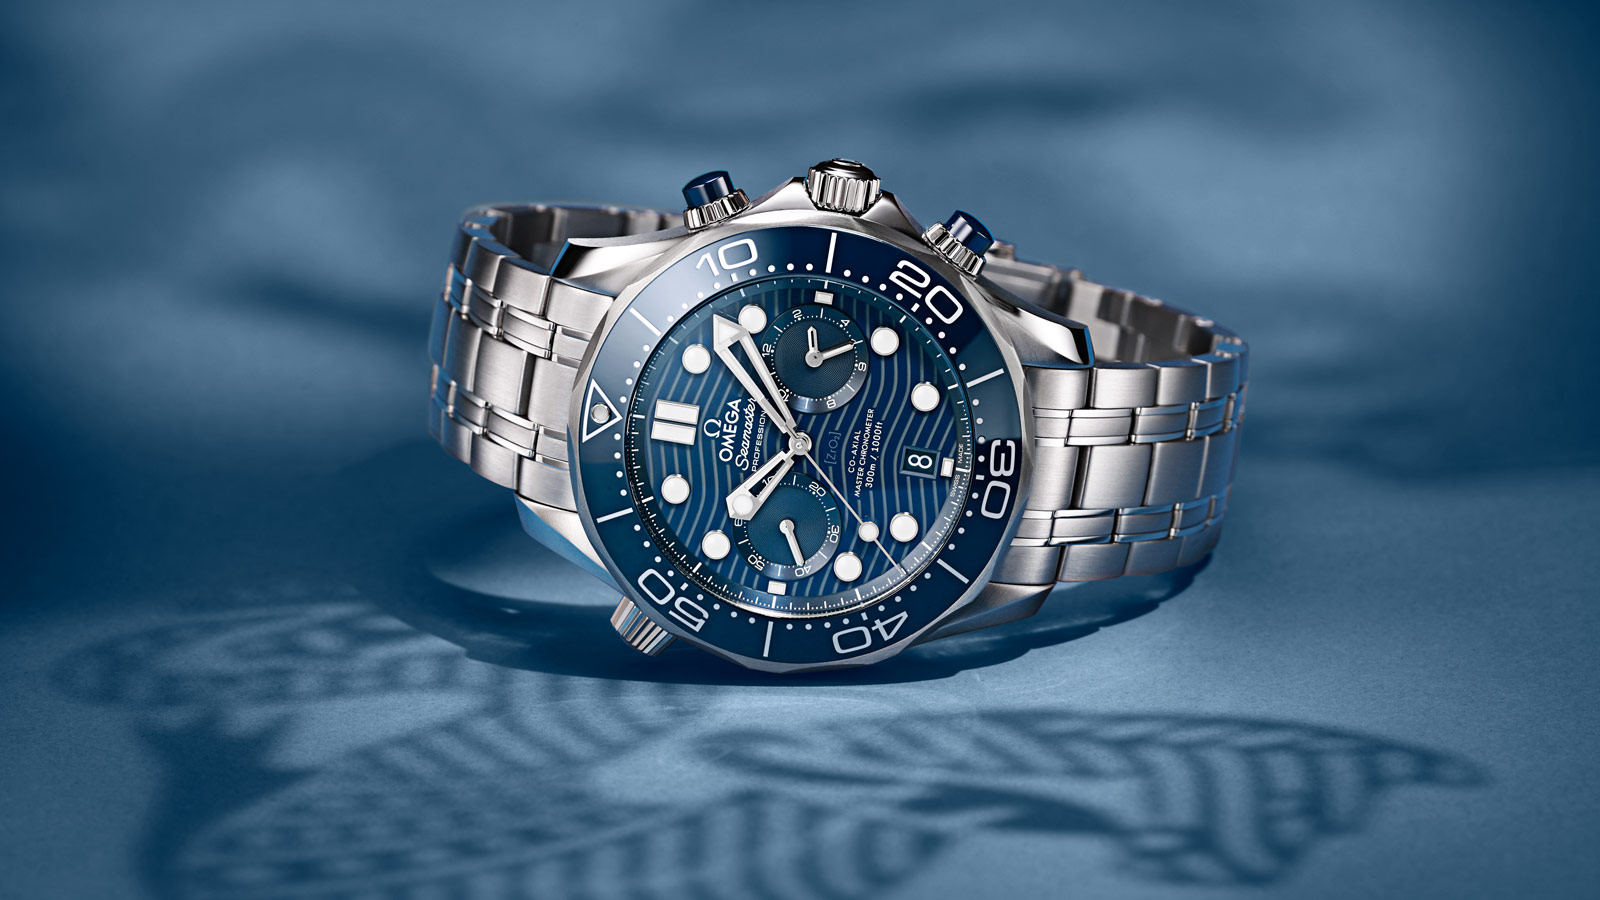 Seamaster Diver 300 M Diver 300M Omega Co‑Axial Master Chronometer Chronograph 44 mm Watch - 210.30.44.51.03.001